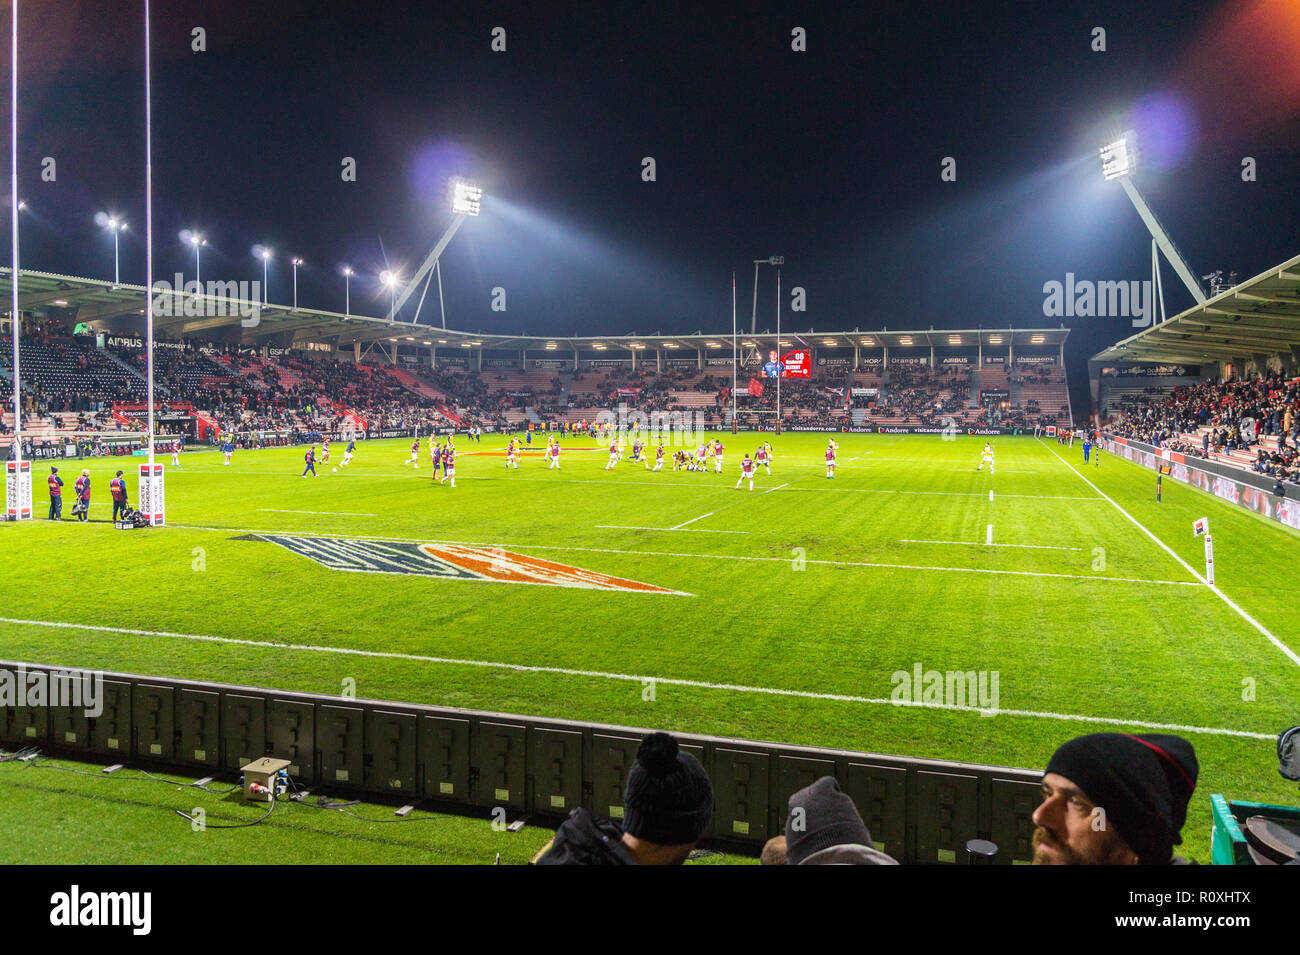 spectators-on-the-terraces-of-ernest-wallon-stadium-home-ground-of-stade-toulousain-rugby-union-team-toulouse-haute-garonne-occitanie-france-R0XHTX.jpg